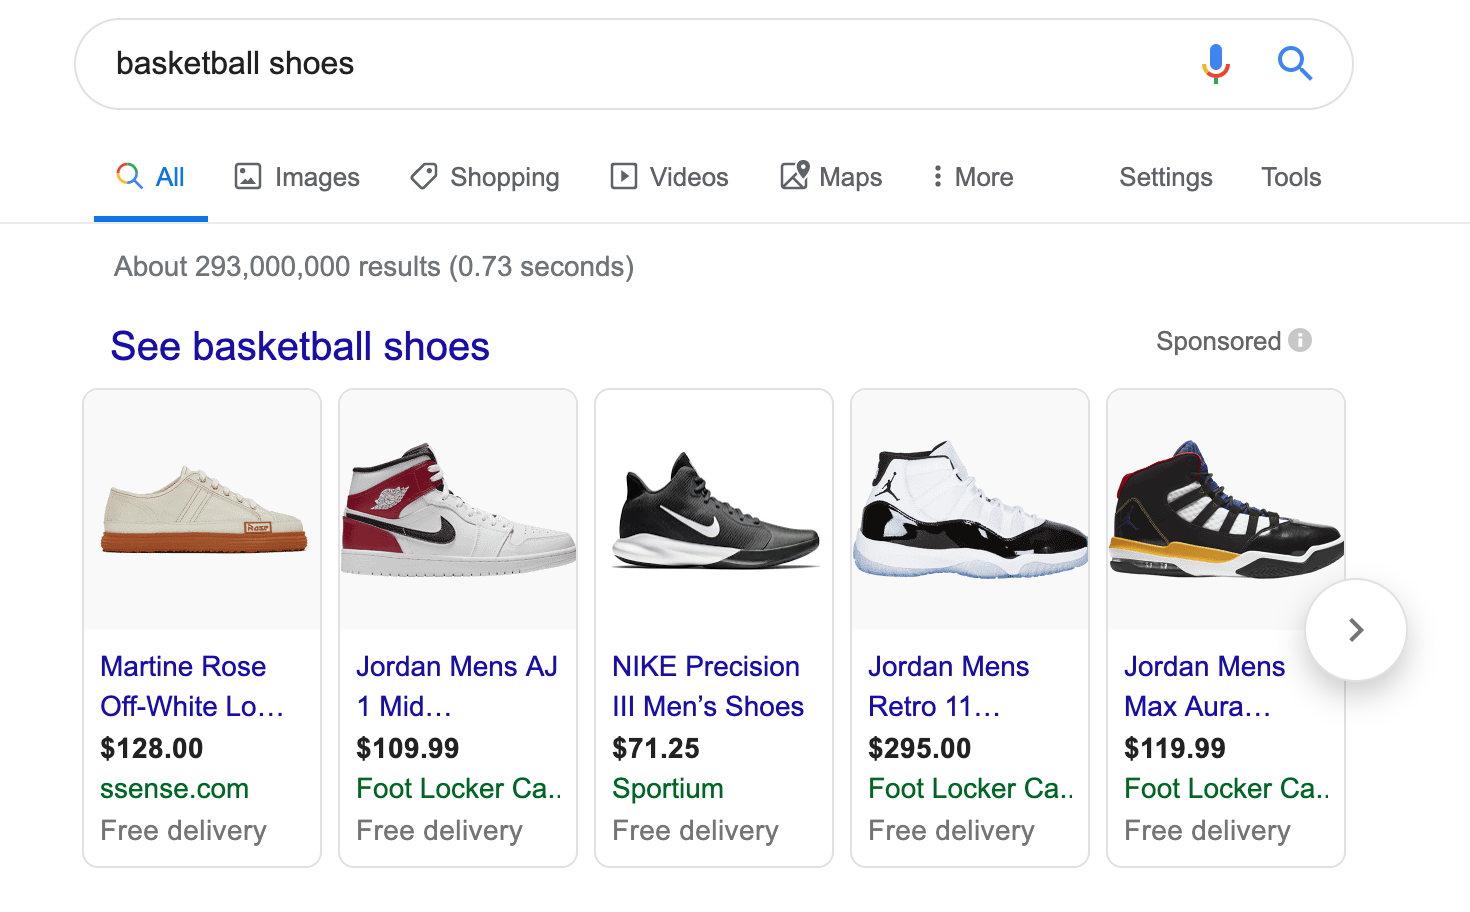 Google shopping product carousel for basketball shoes